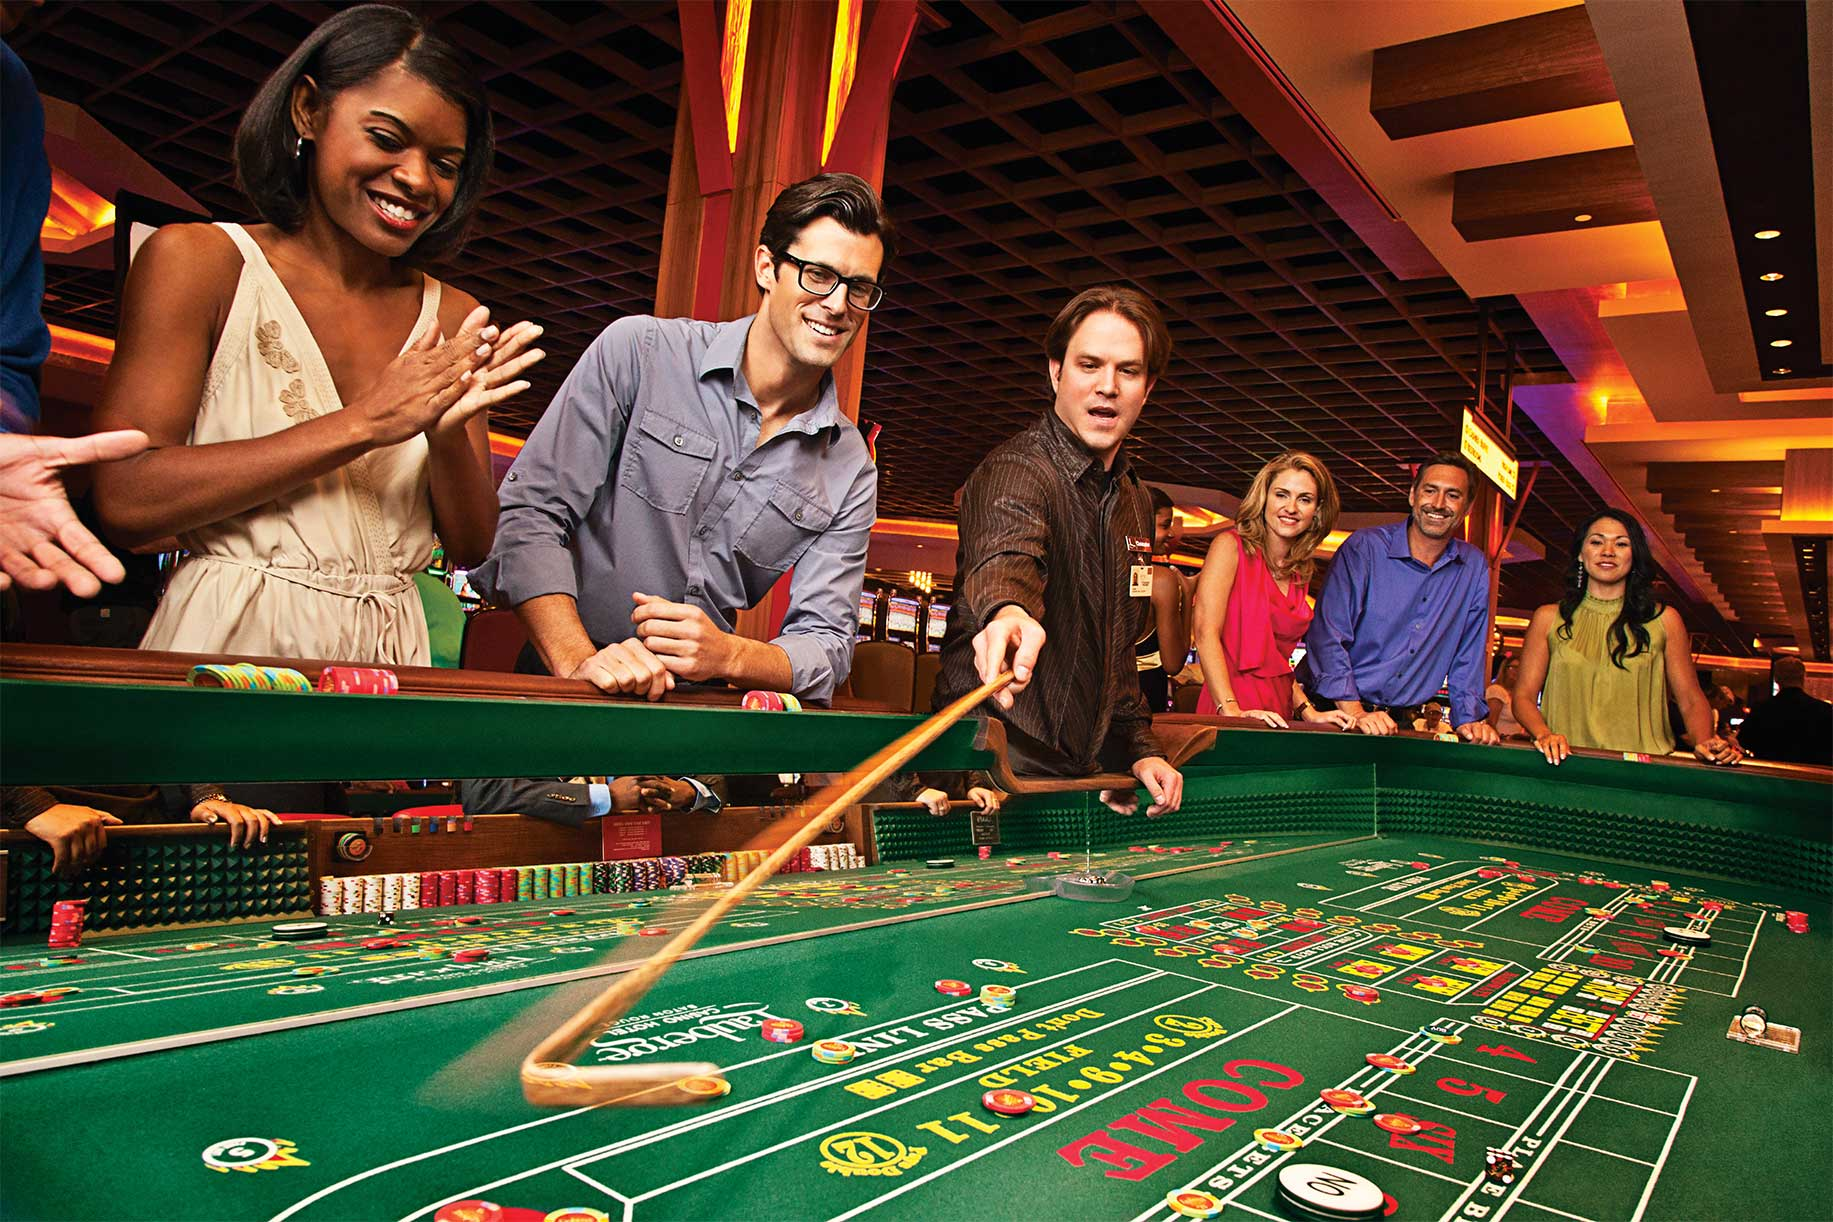 The Next 7 Things You Need To Do For Gambling Success